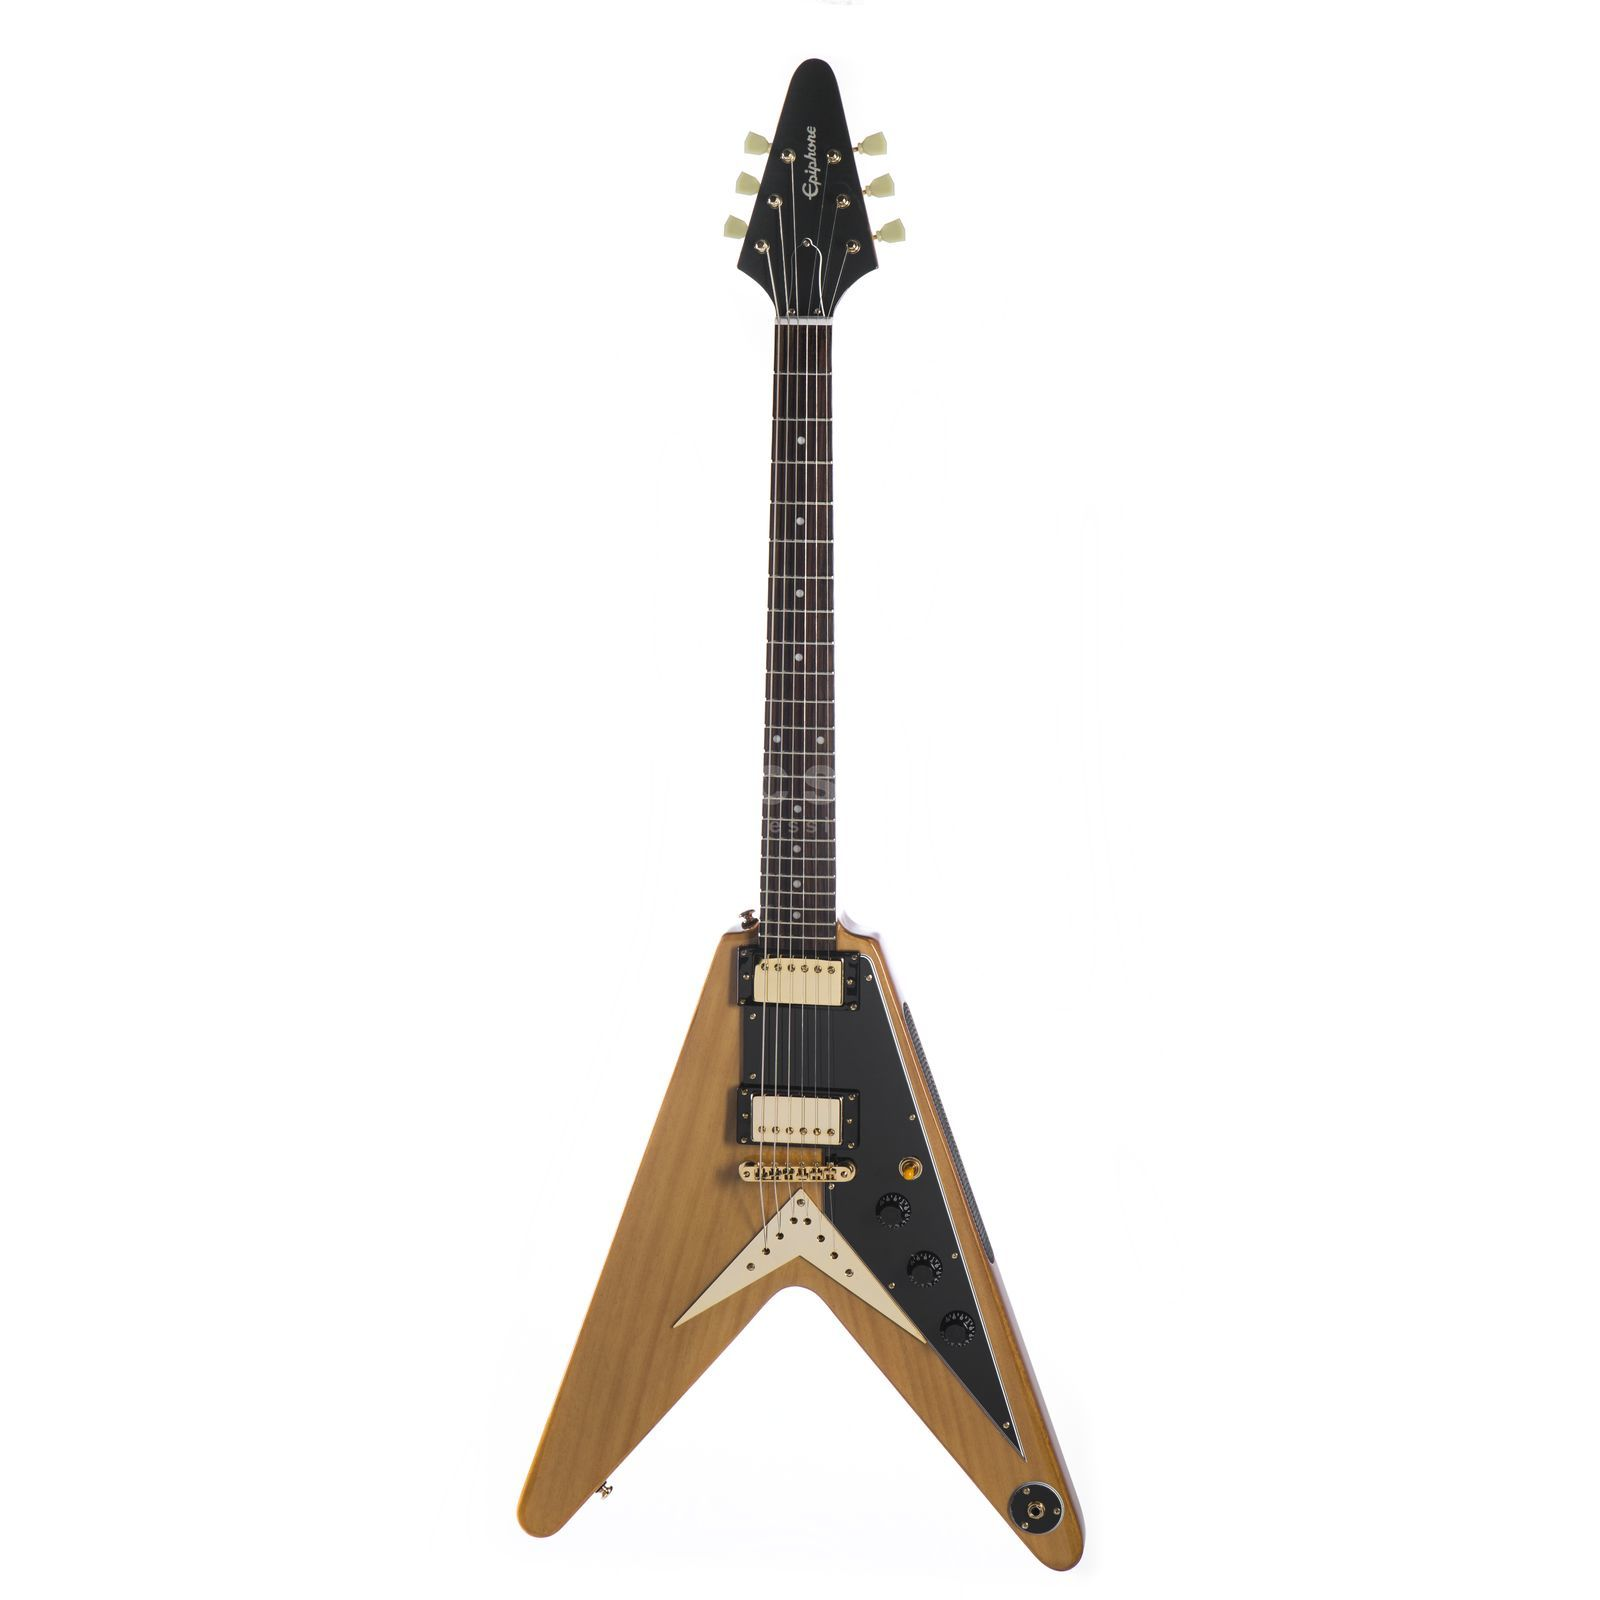 Epiphone Limited Edition Korina Flying V Zdjęcie produktu